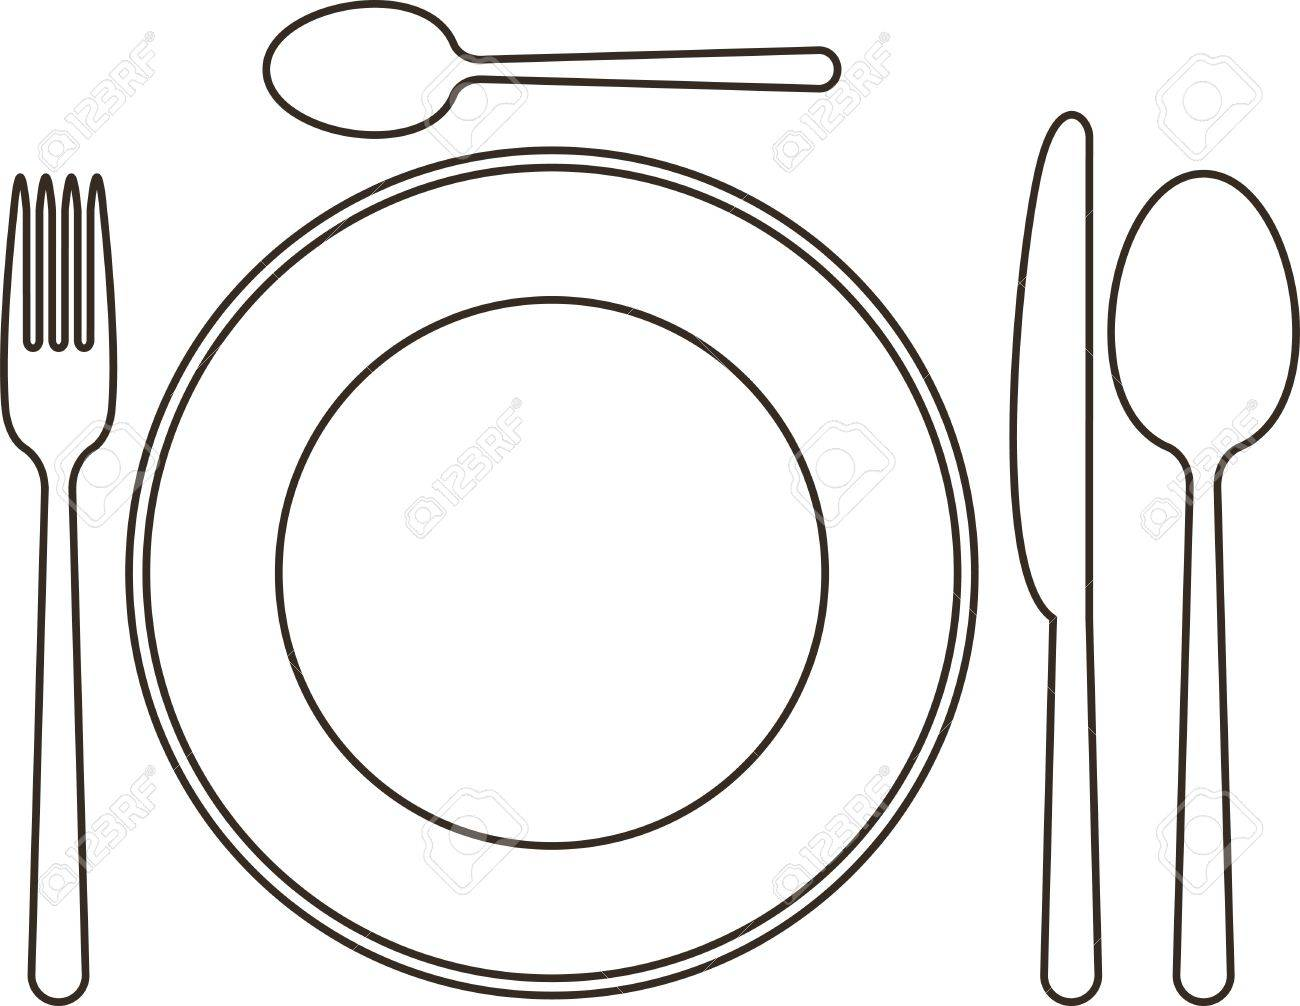 1300x1006 Place Setting With Plate, Knife, Spoons And Fork Royalty Free